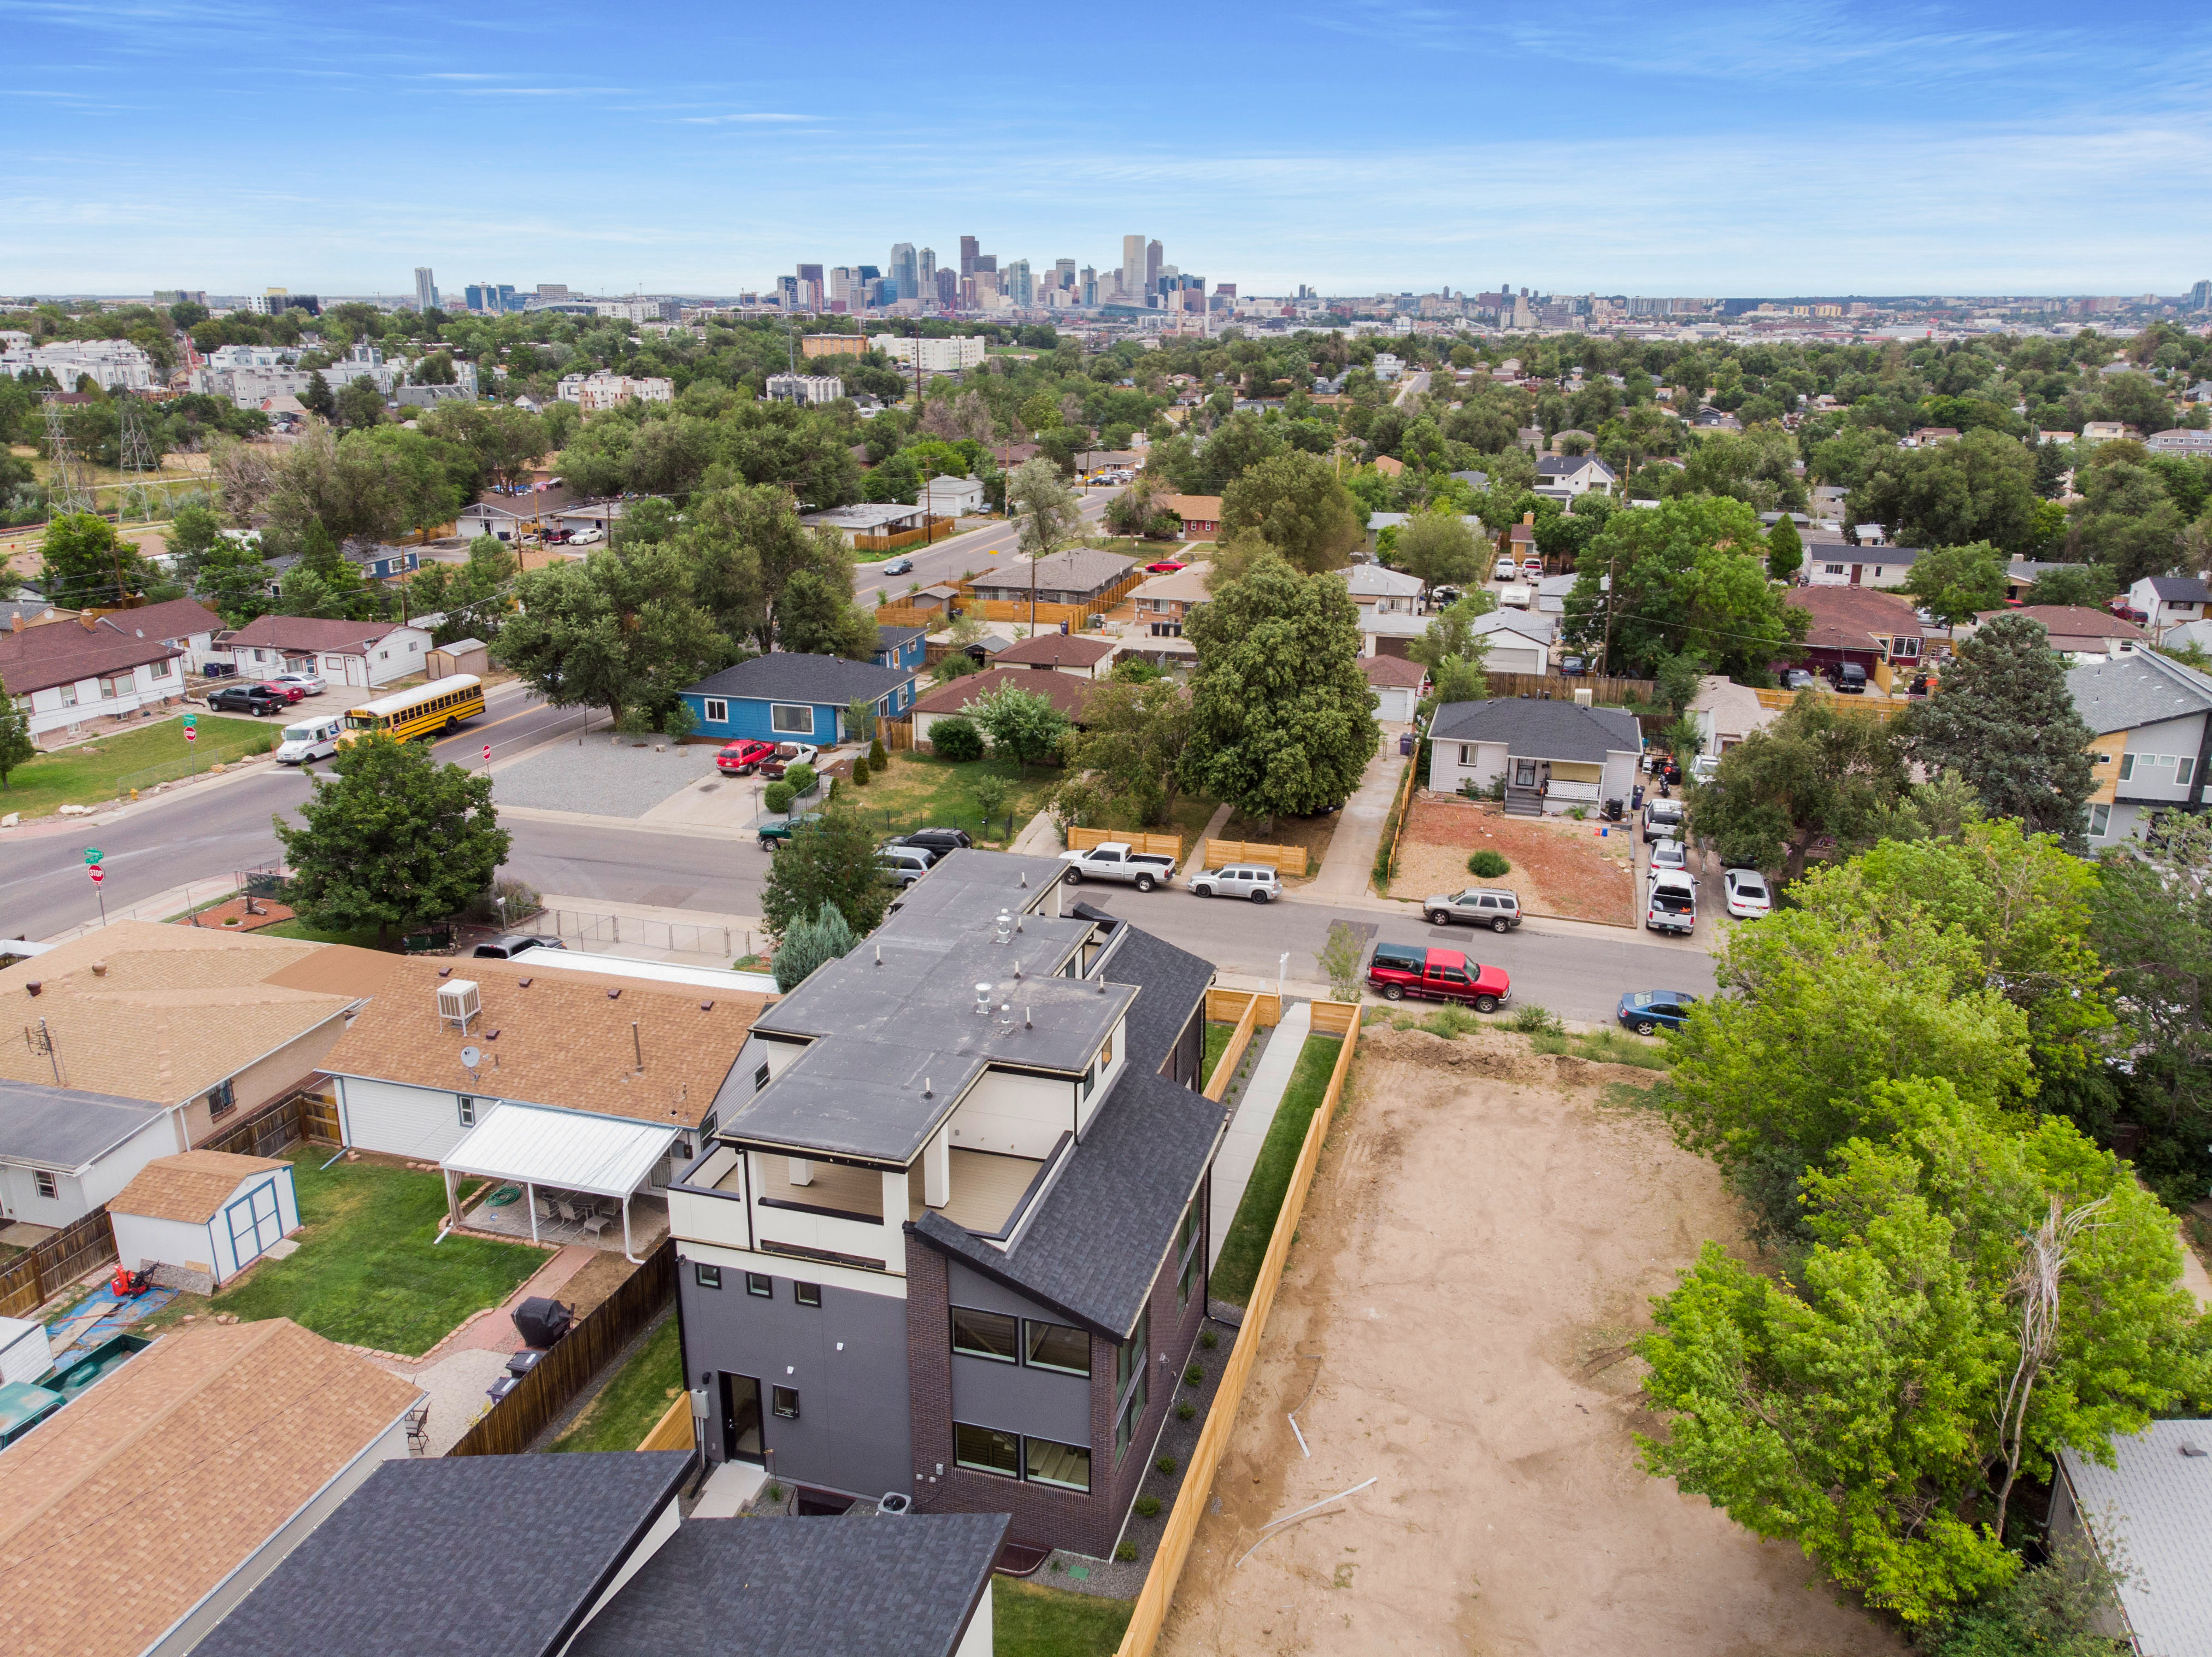 971 Tennyson St.  Completed in 2019 and currently for sale MLS#8537526